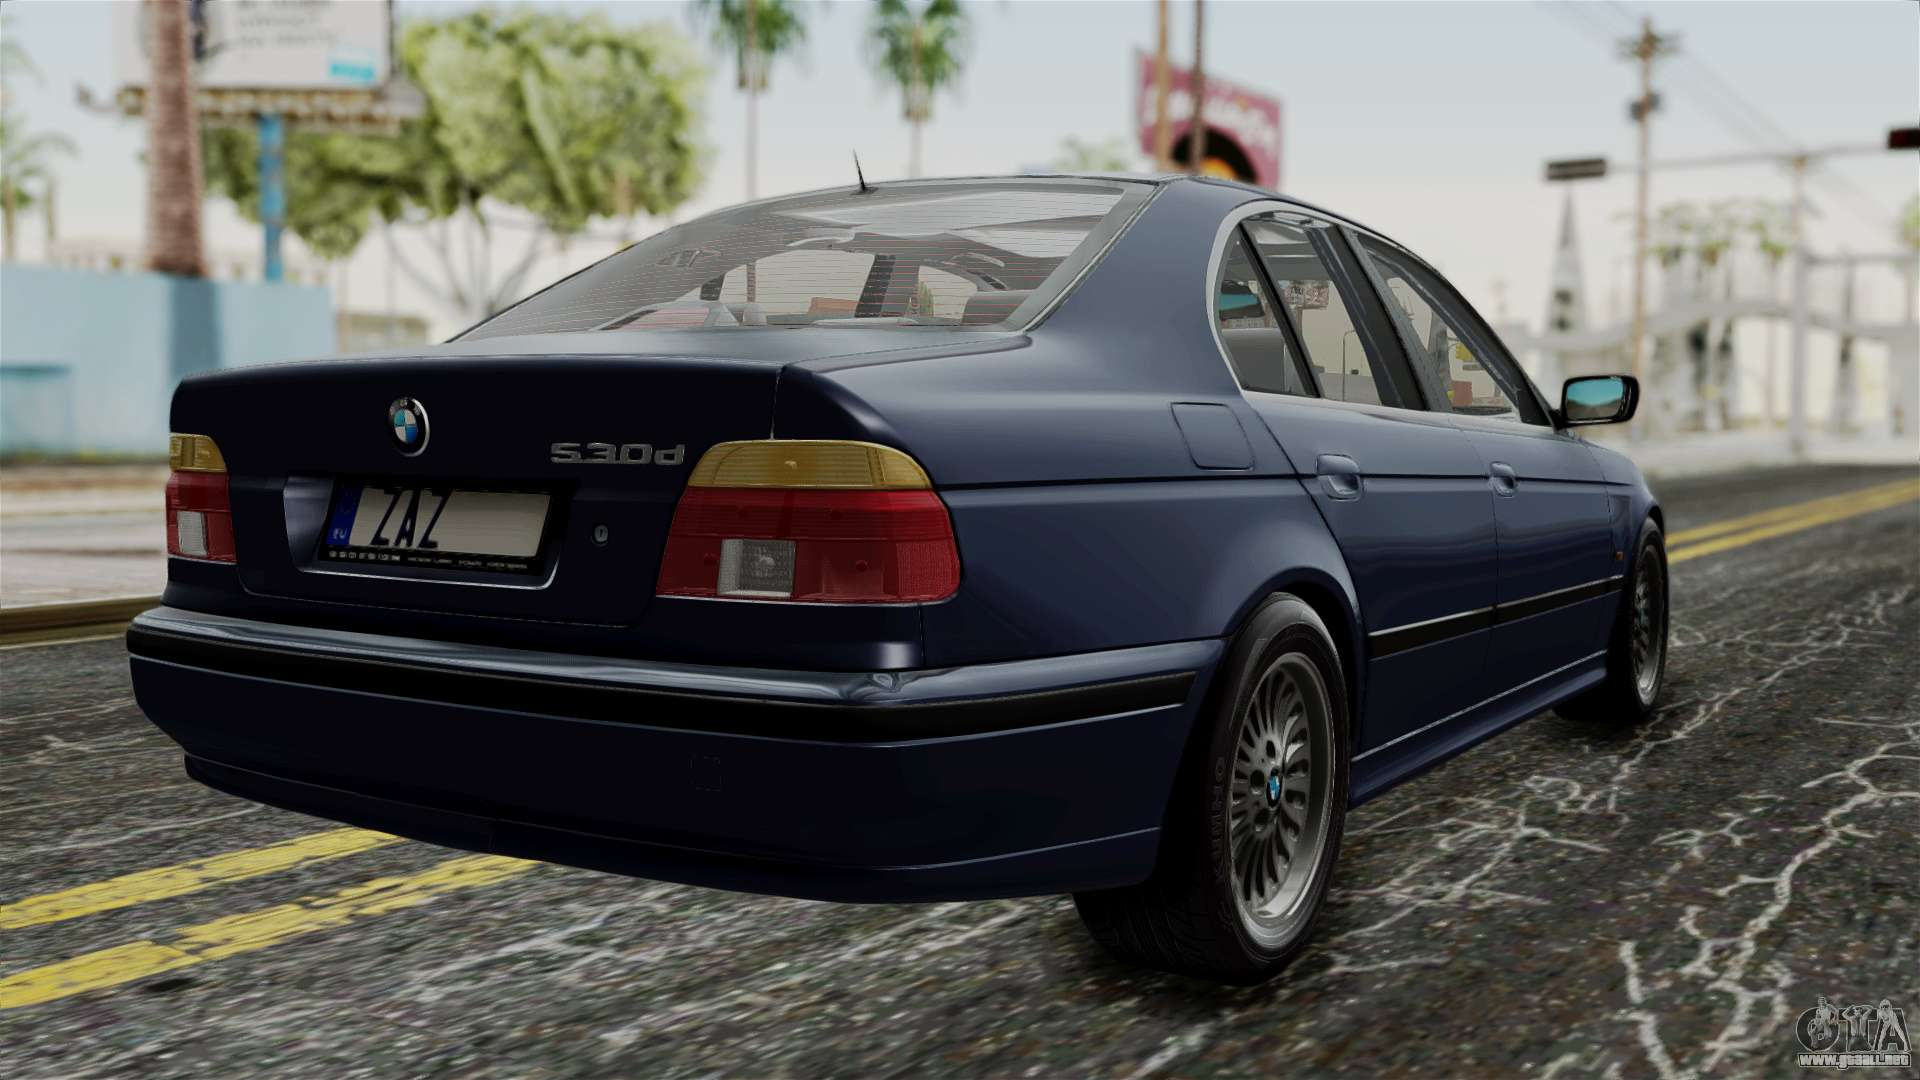 bmw 530d e39 1999 stock para gta san andreas. Black Bedroom Furniture Sets. Home Design Ideas